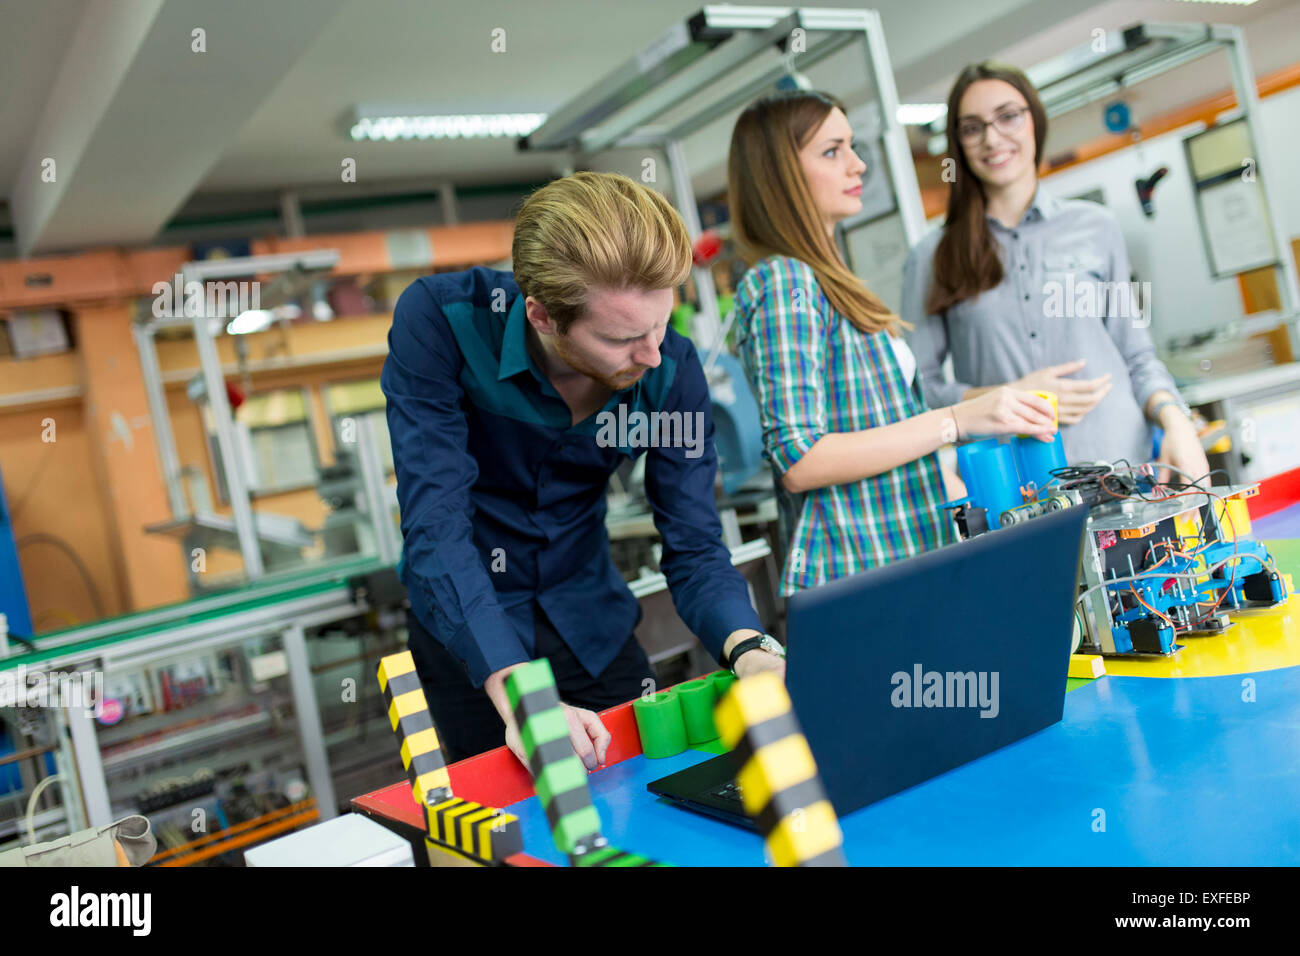 Young People In The Robotics Classroom Stock Photo 85163114 Alamy